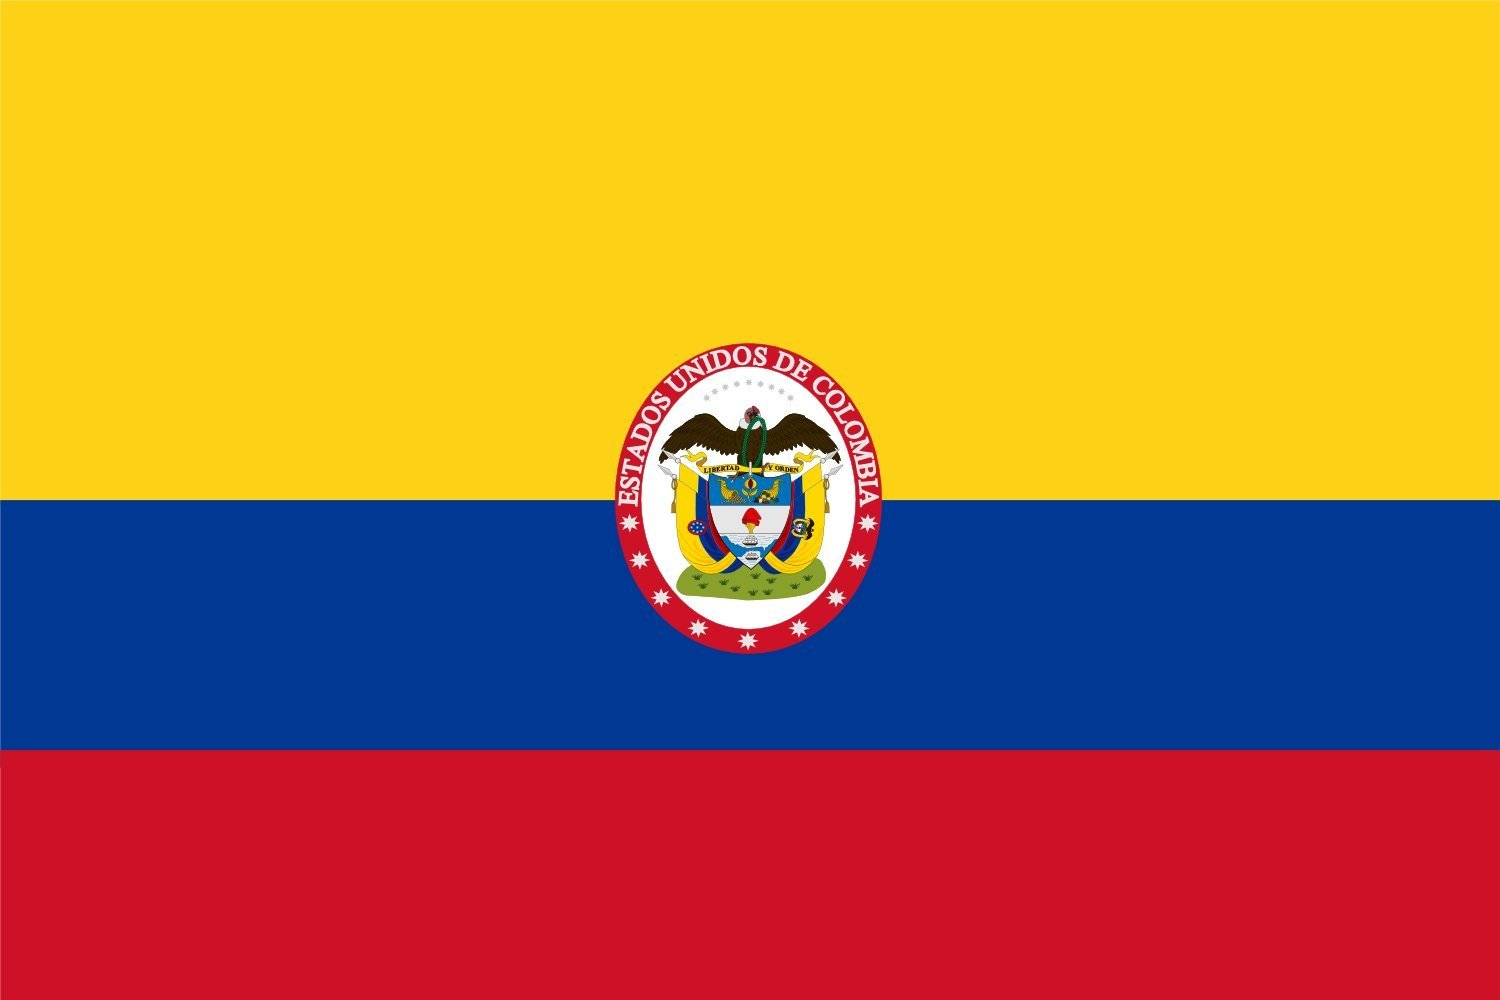 magFlags Large Flag Military flag of United States of Colombia   Military flag and naval ensign of United States of Colombia   Naval de guerra de los Estados Unidos de Colombia 90x150cm   3x5ft -- 10